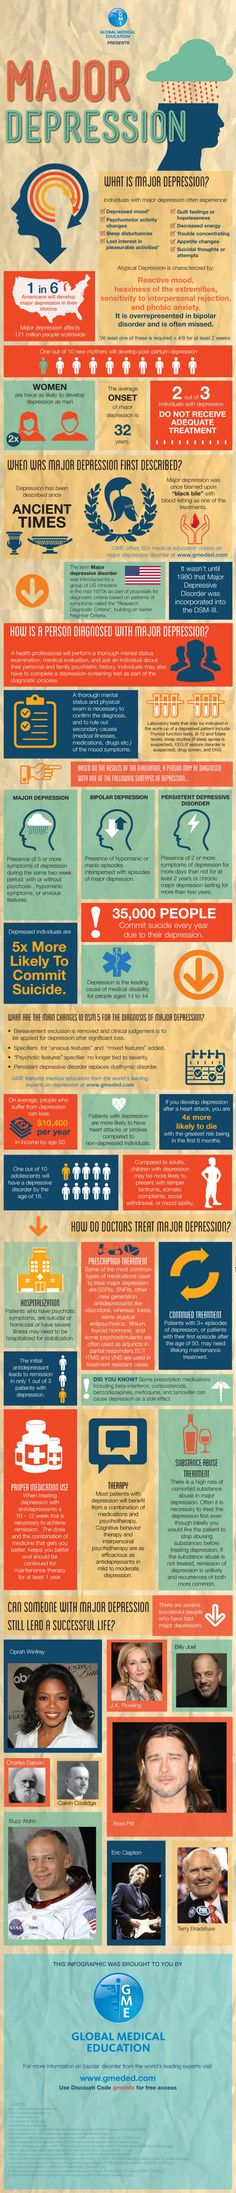 Important facts on the diagnosis and treatment of depression from the world's experts.